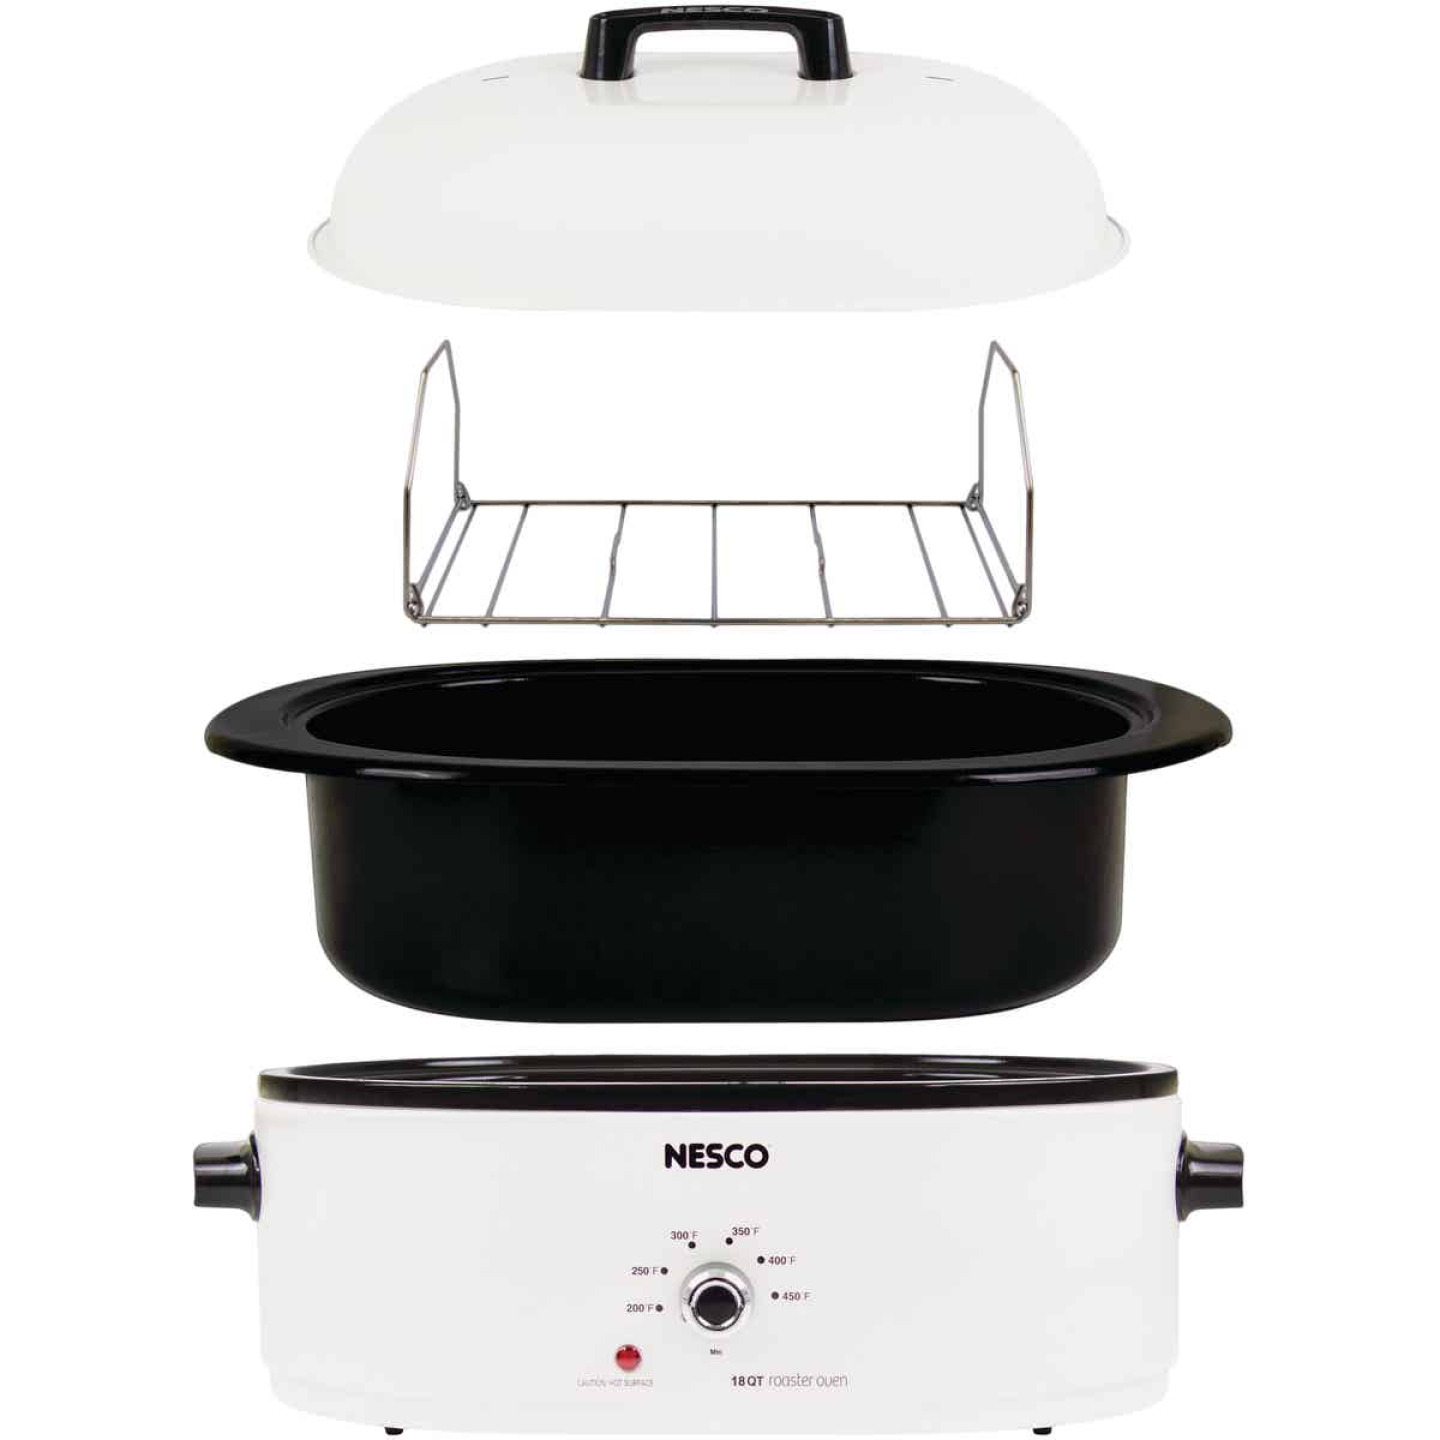 Nesco 18 Qt. Ivory Electric Roaster Image 3